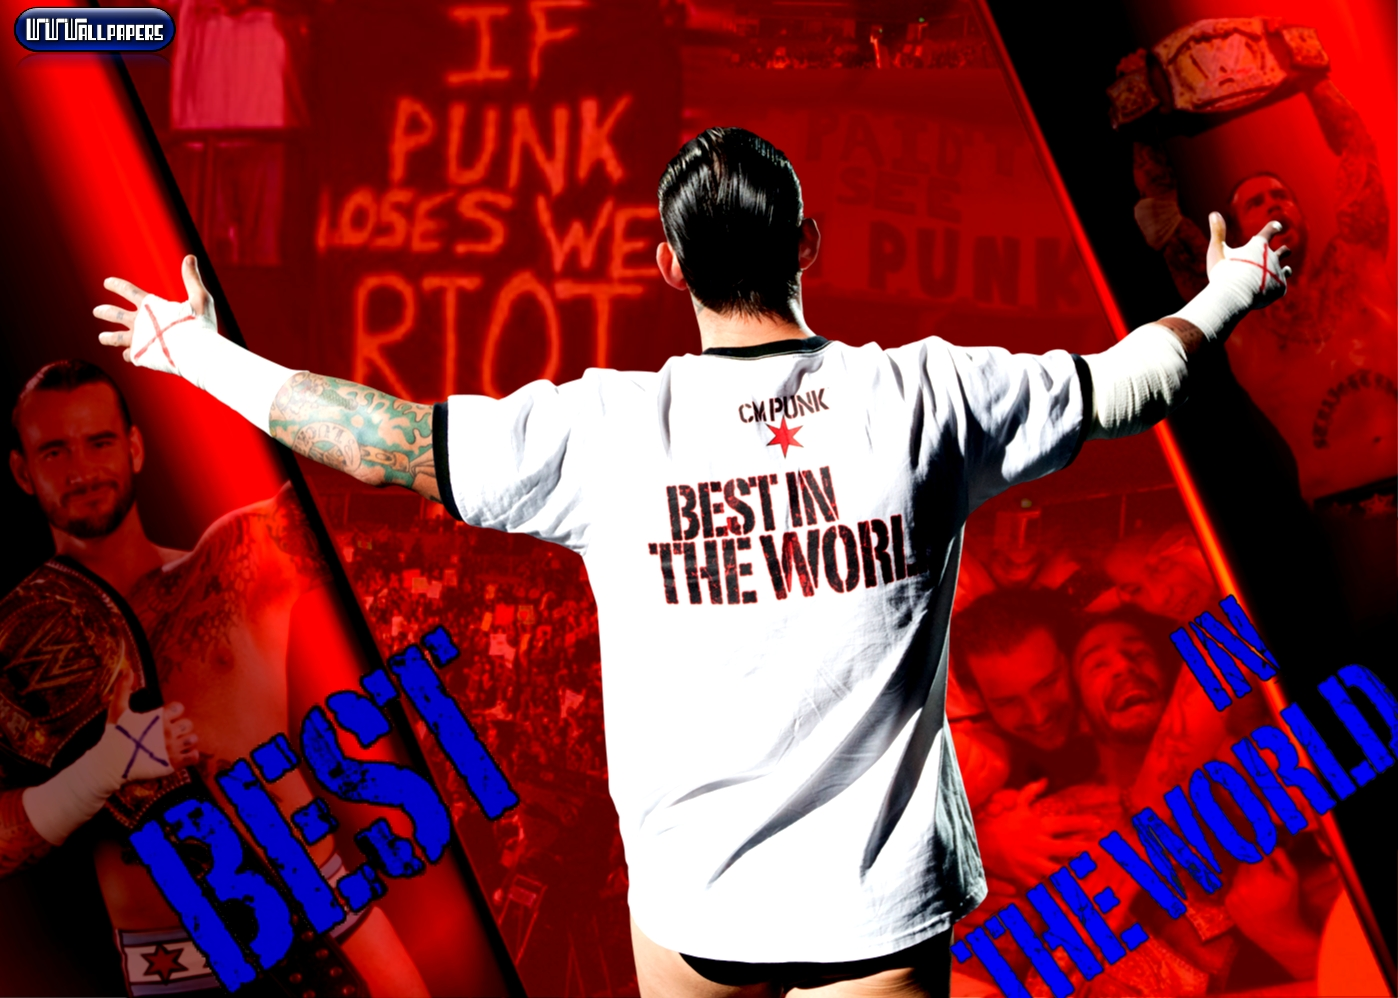 http://2.bp.blogspot.com/-MQWQkfsGEFw/Ts_nF-tRmeI/AAAAAAAABbw/4FZAhNarOd0/s1600/Cm+punk+wwe+wallpaper+best+world+champion+voice.jpg